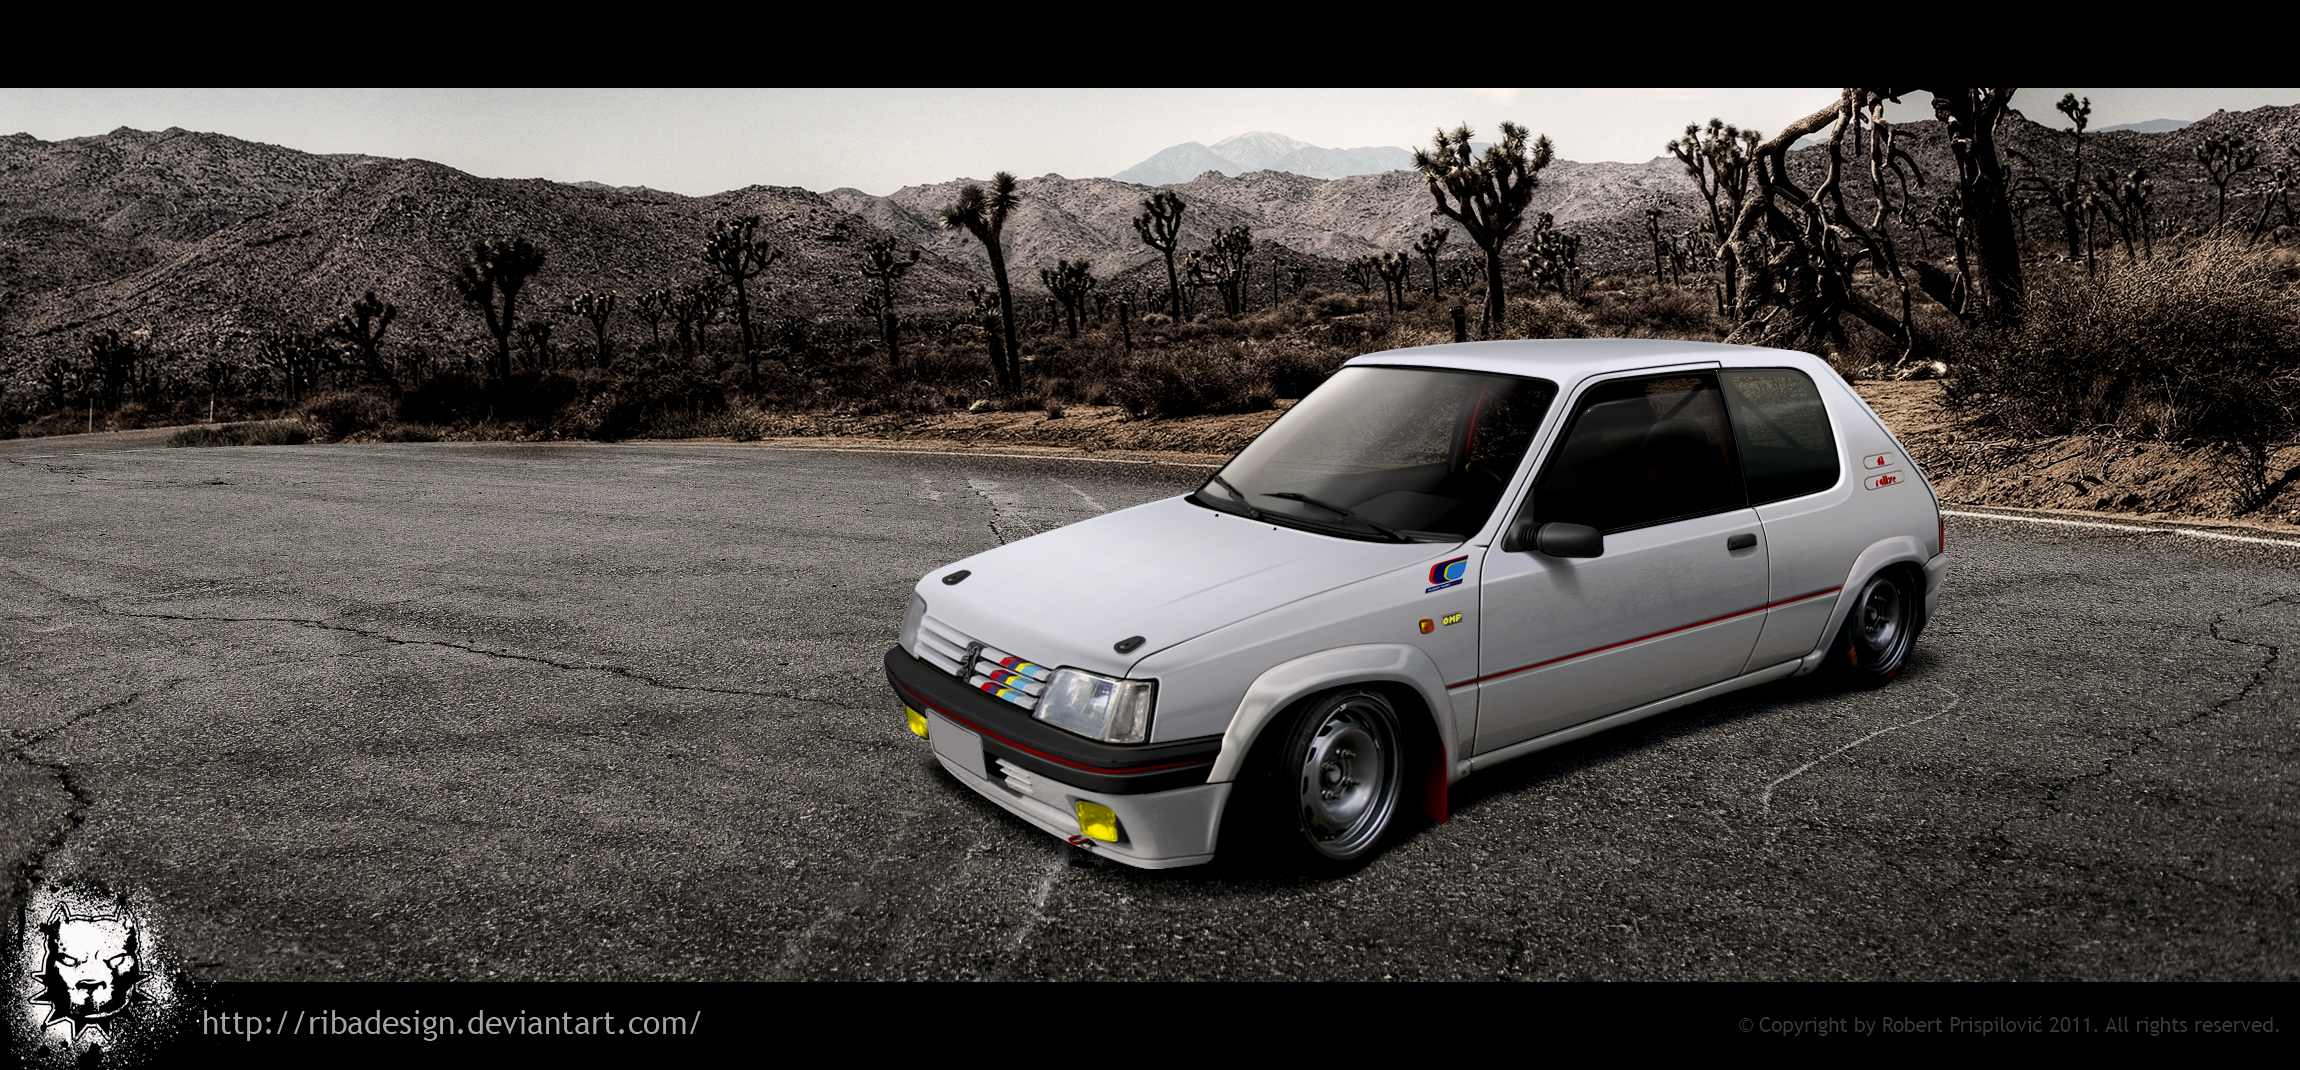 Peugeot 205 rallye by RibaDesign